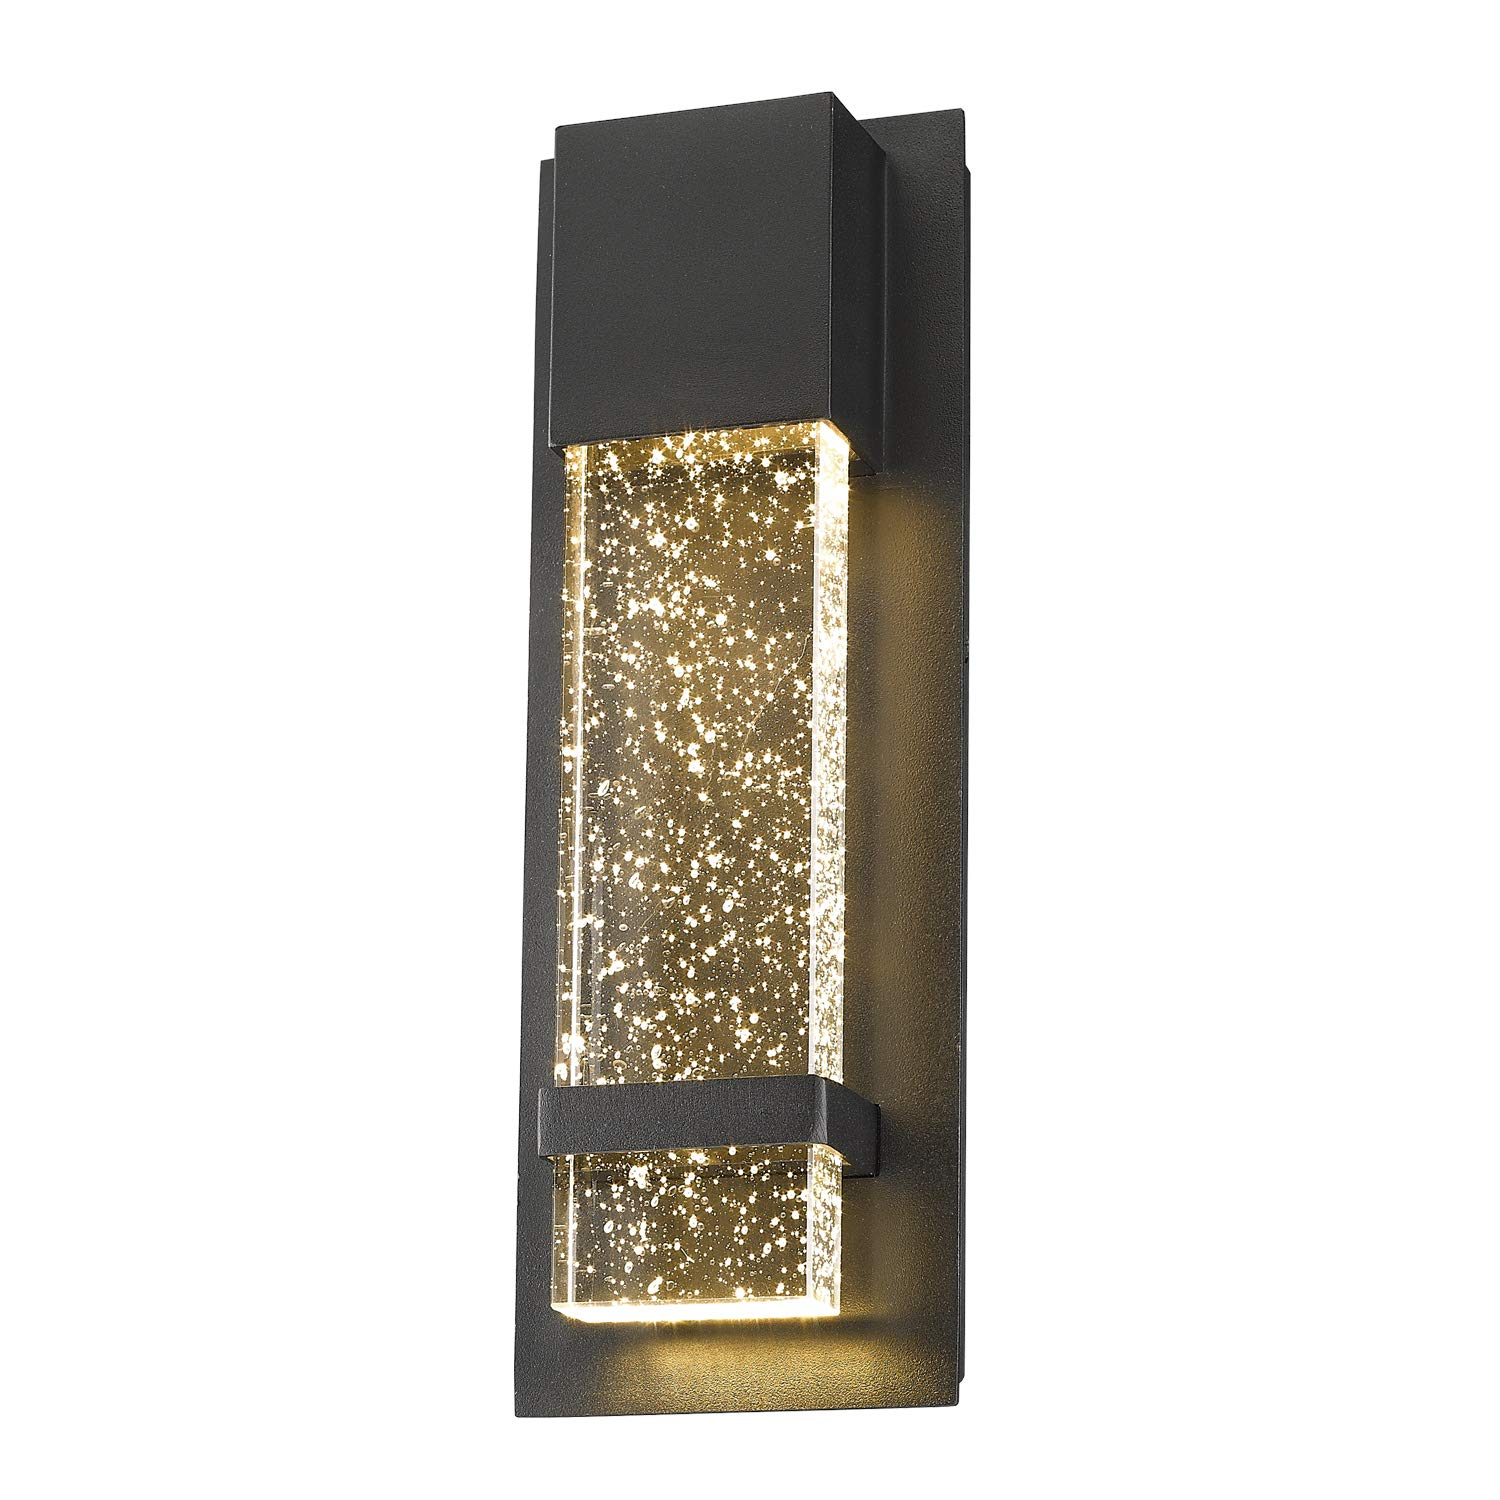 Emliviar Indoor Outdoor LED Wall Sconce Light, Modern Wall Lamp in Black Finish with Bubble Glass, 0395-WD